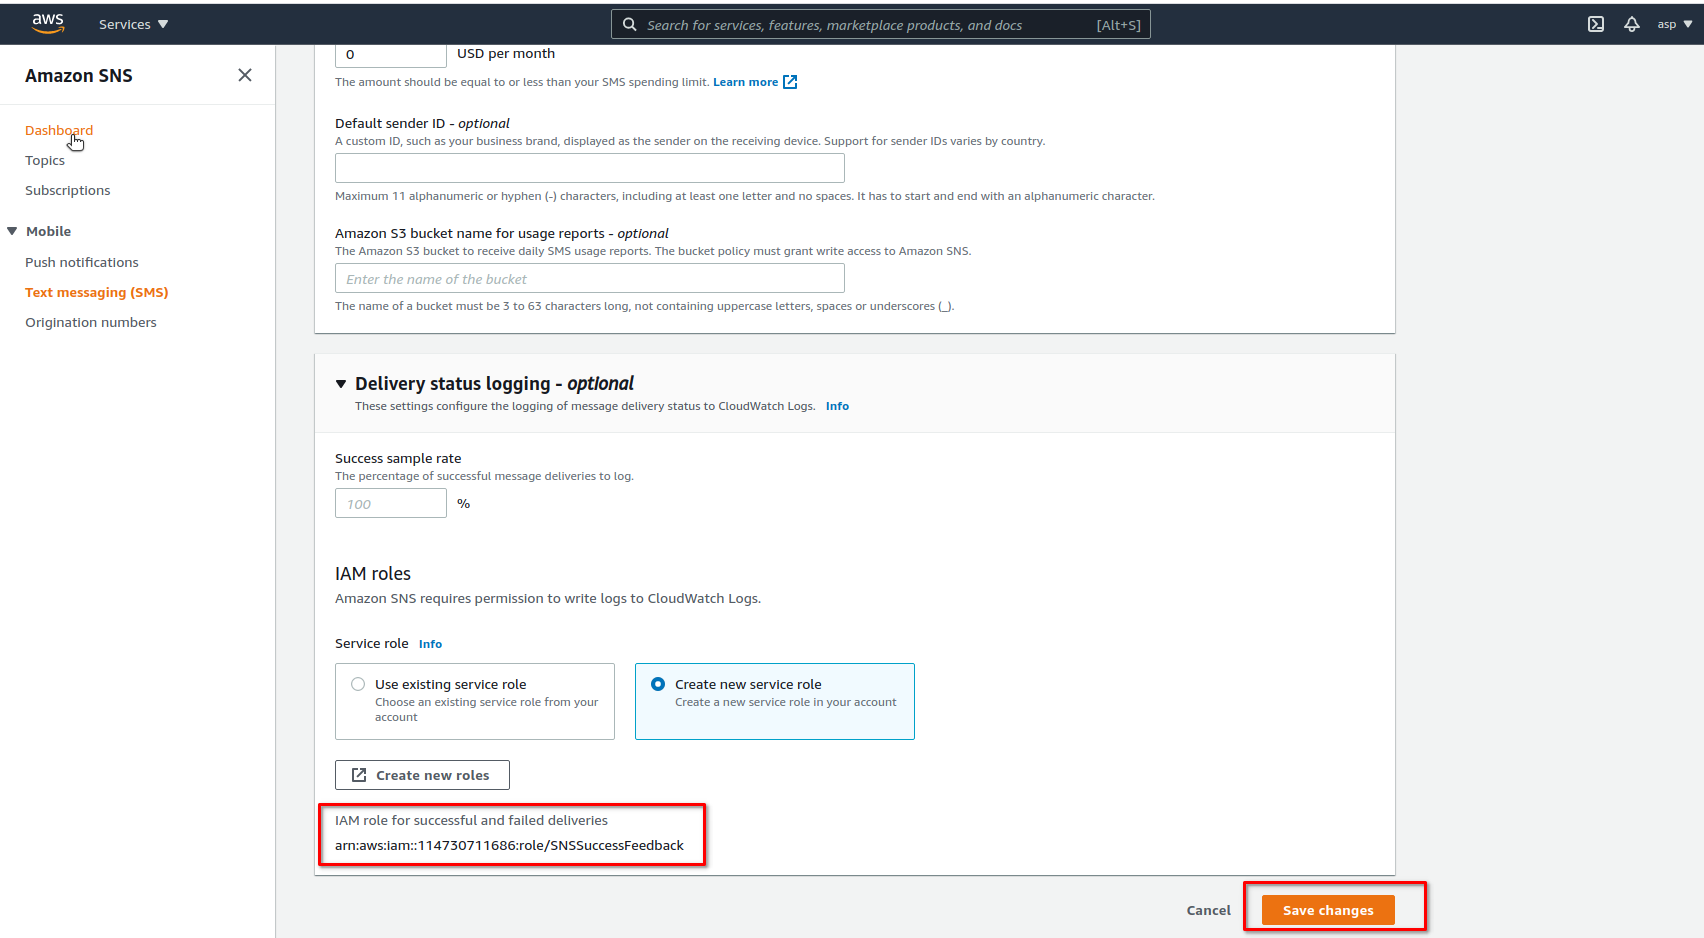 AWS SNS Console - Save changes